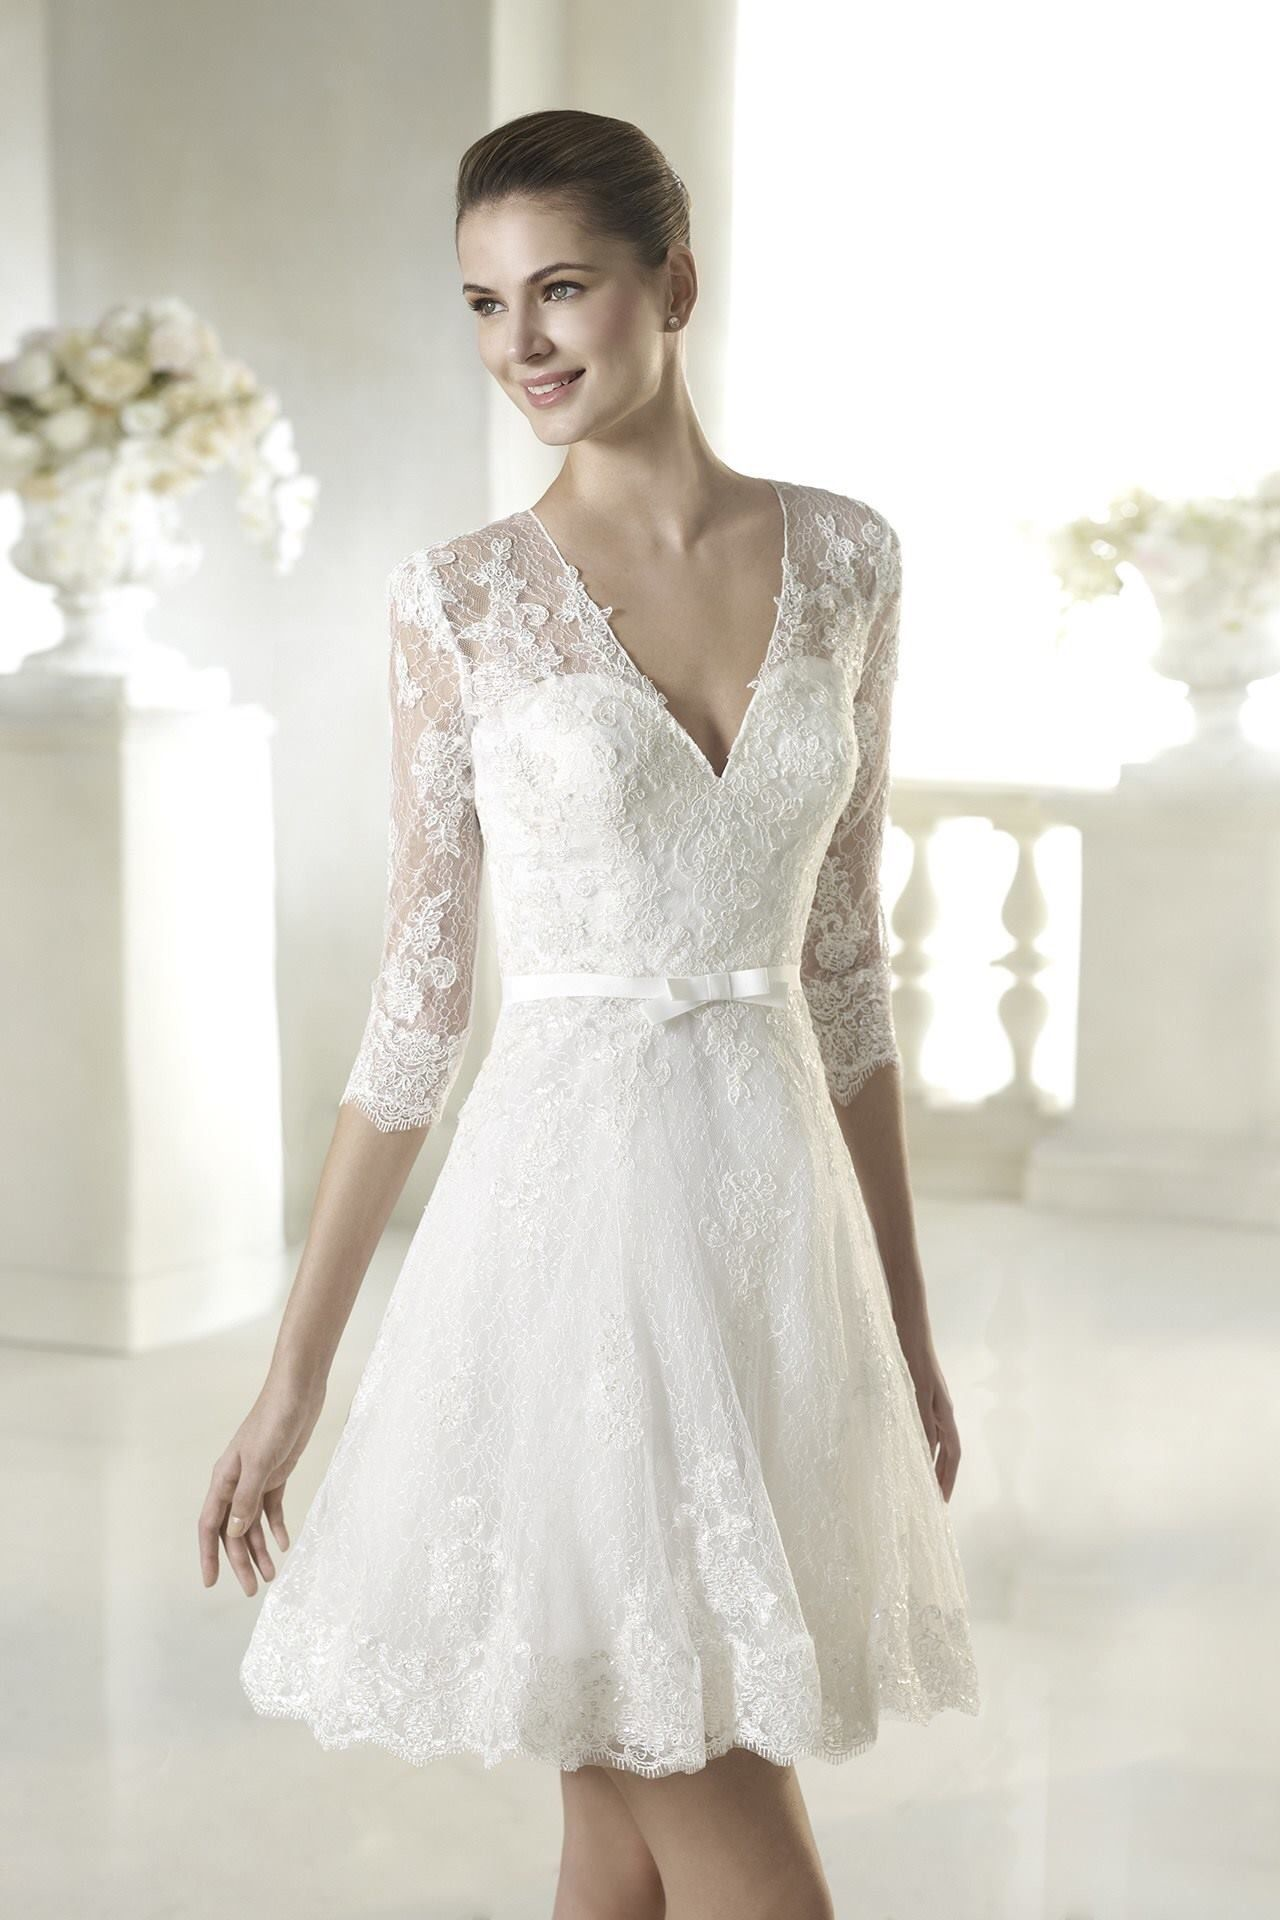 reception or after party dress  Wedding IdeasAttire  Pinterest